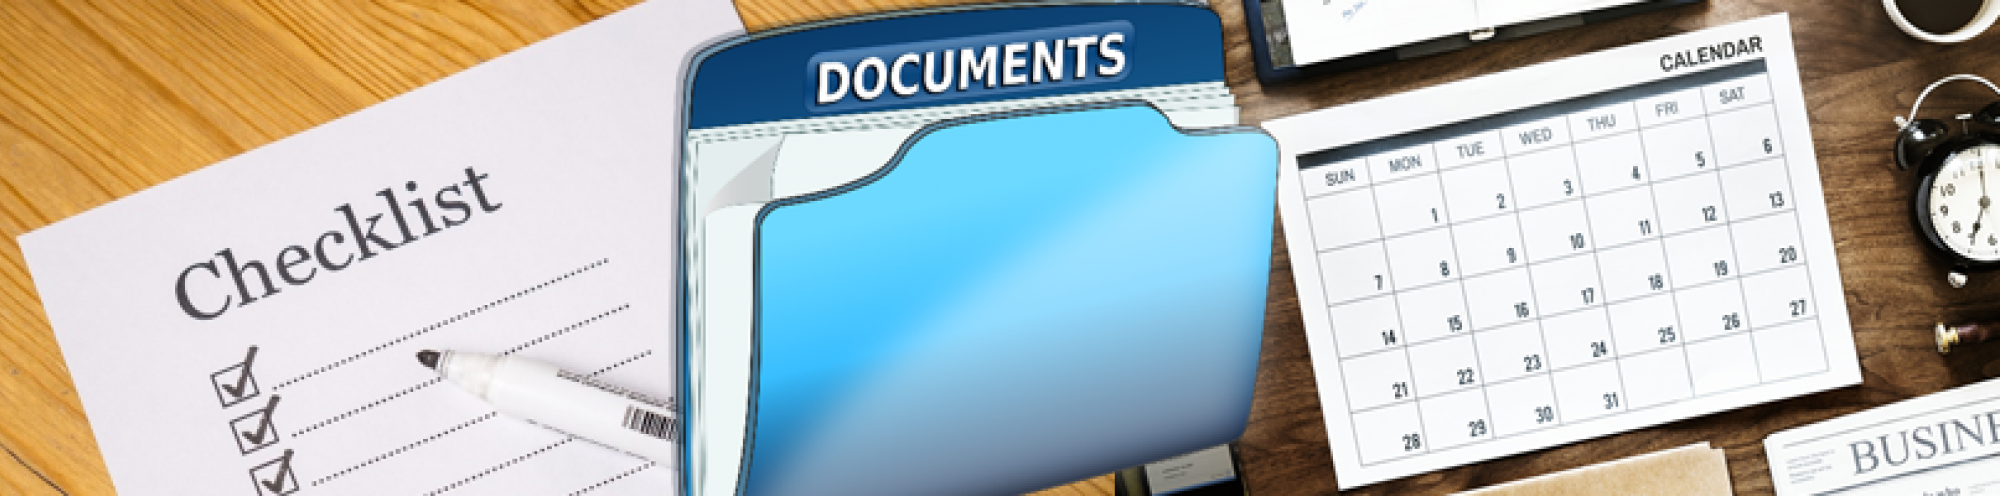 Documents Banner